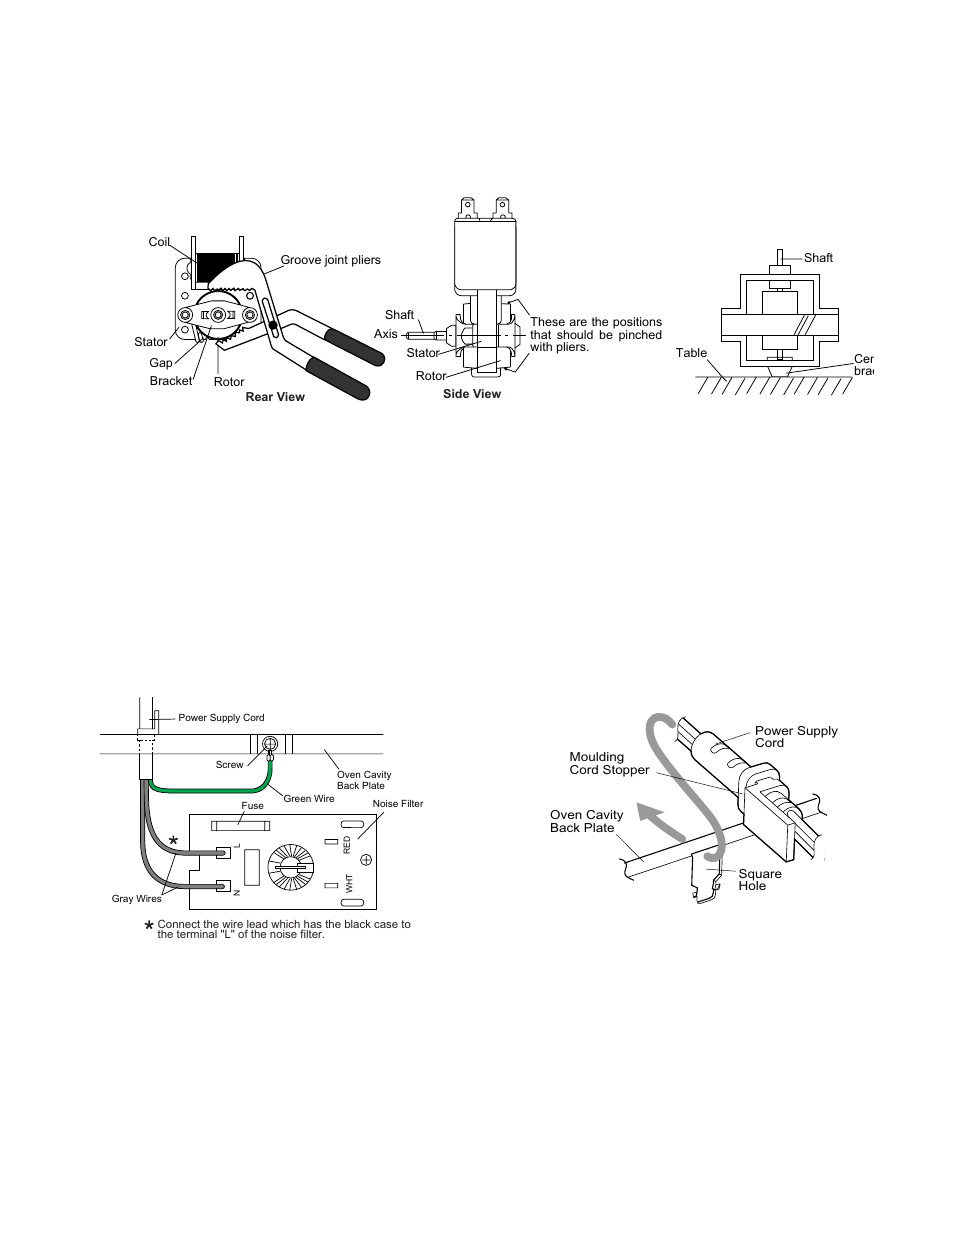 11 Power Supply Cord Replacement Removal Install Sharp Carousel In Order To Remove The Latch Assembly And Or Door Ajar Switch R 305ks User Manual Page 29 40